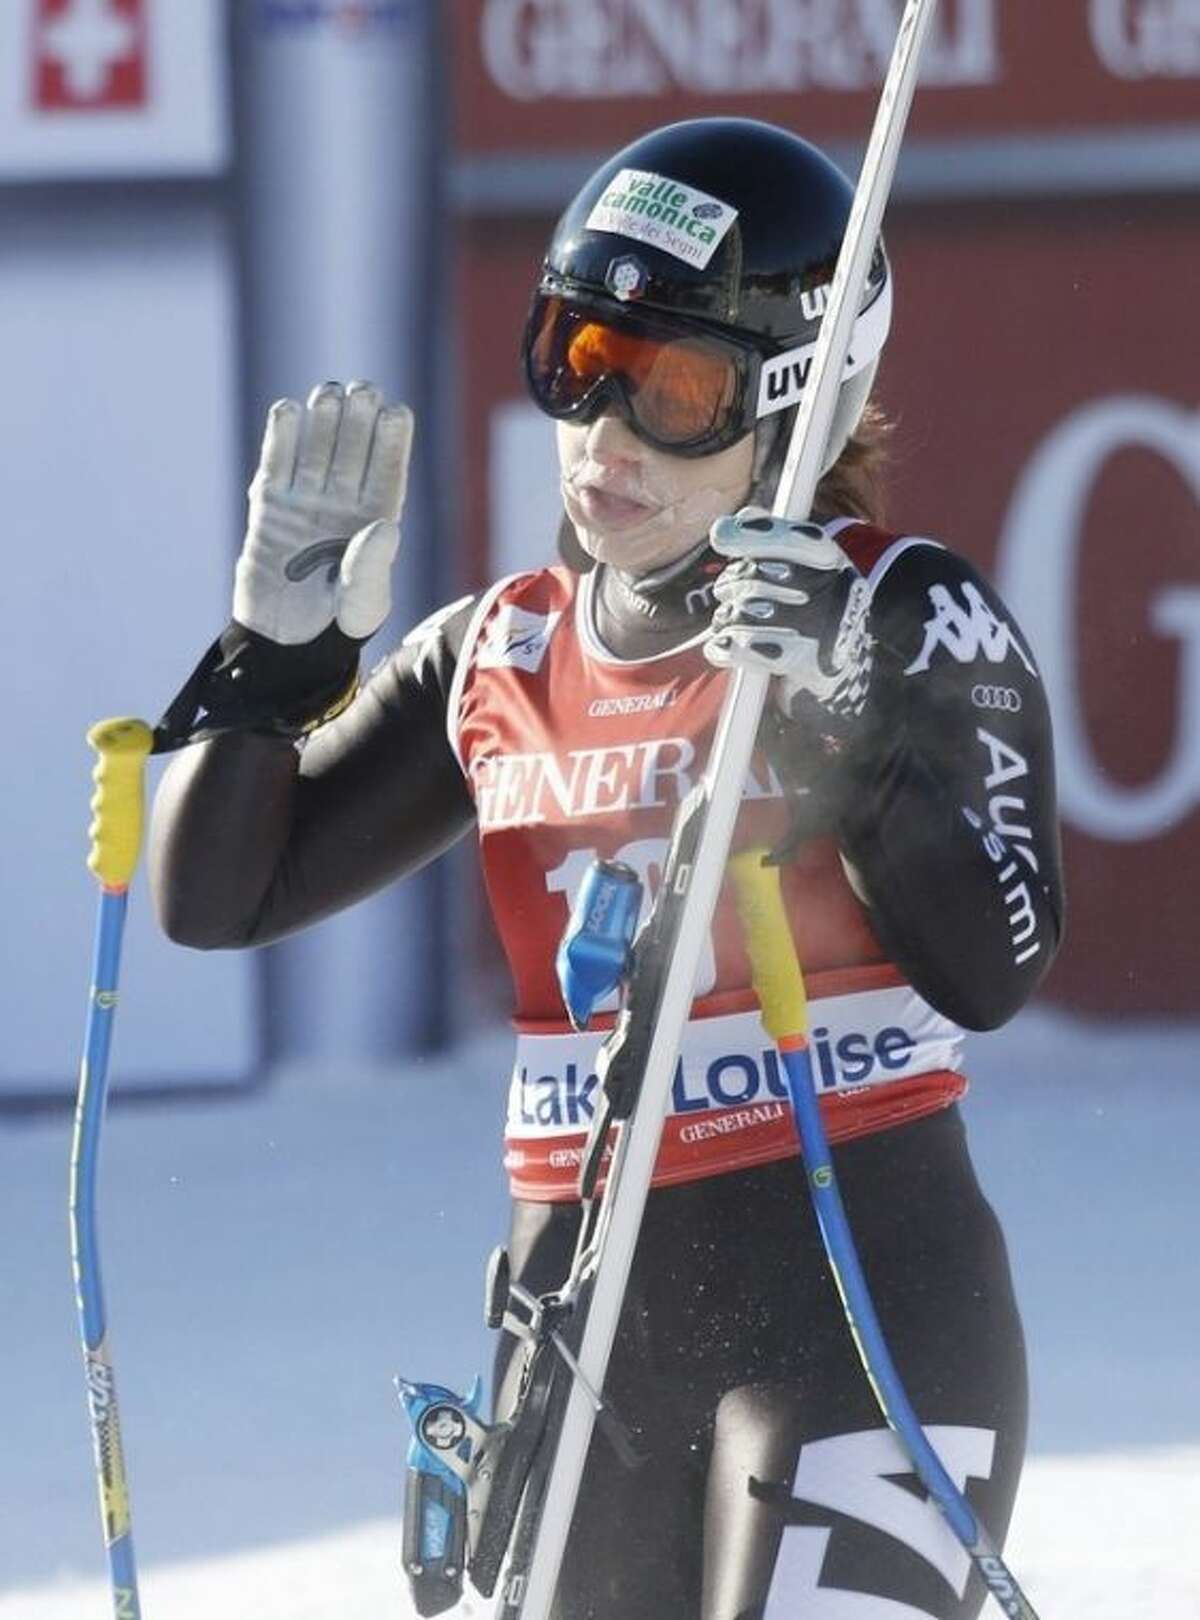 Elena Fanchini, of Italy, reacts in the finish area following her run at the women's World Cup downhill ski race in Lake Louise, Alberta, Friday, Dec. 6, 2013. (AP Photo/The Canadian Press, Jeff McIntosh)